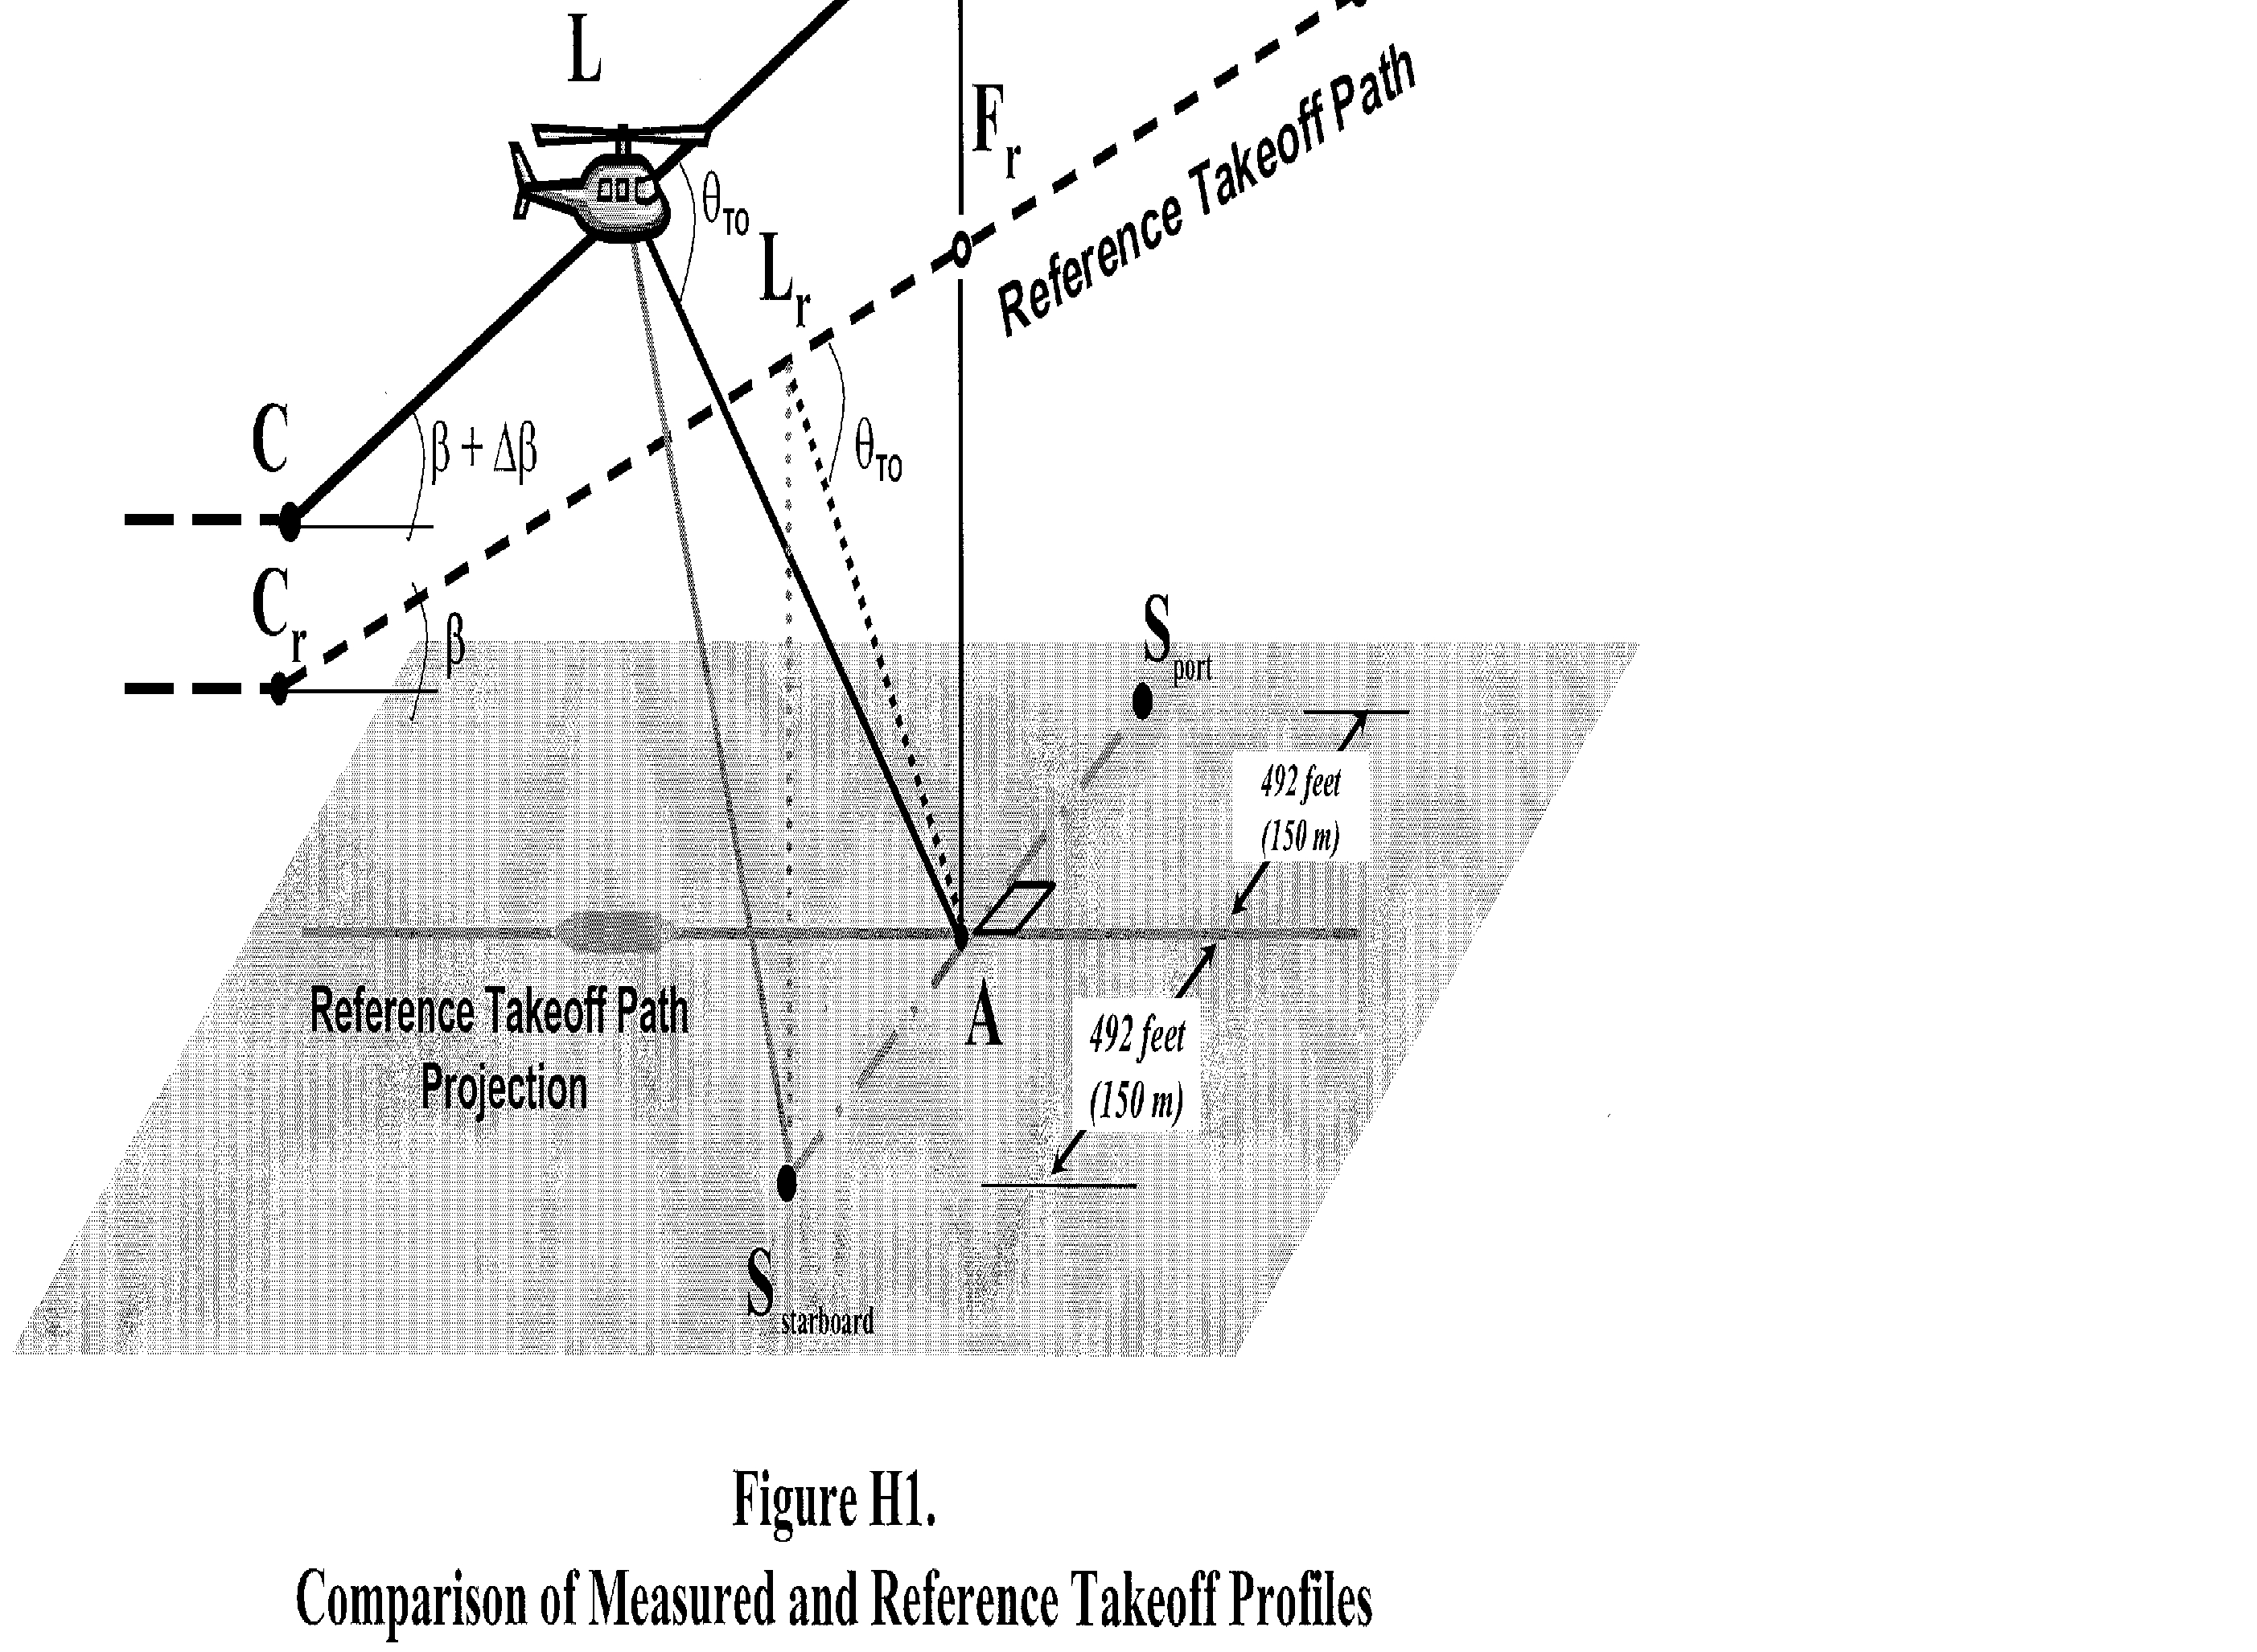 Graphic of (2) For the actual takeoff, the helicopter approaches position C in level flight at 65 feet (20 meters) above ground level at the flight track noise measuring station and at either Vy ±5 knots or the lowest approved speed for the climb after takeoff, whichever speed is greater.